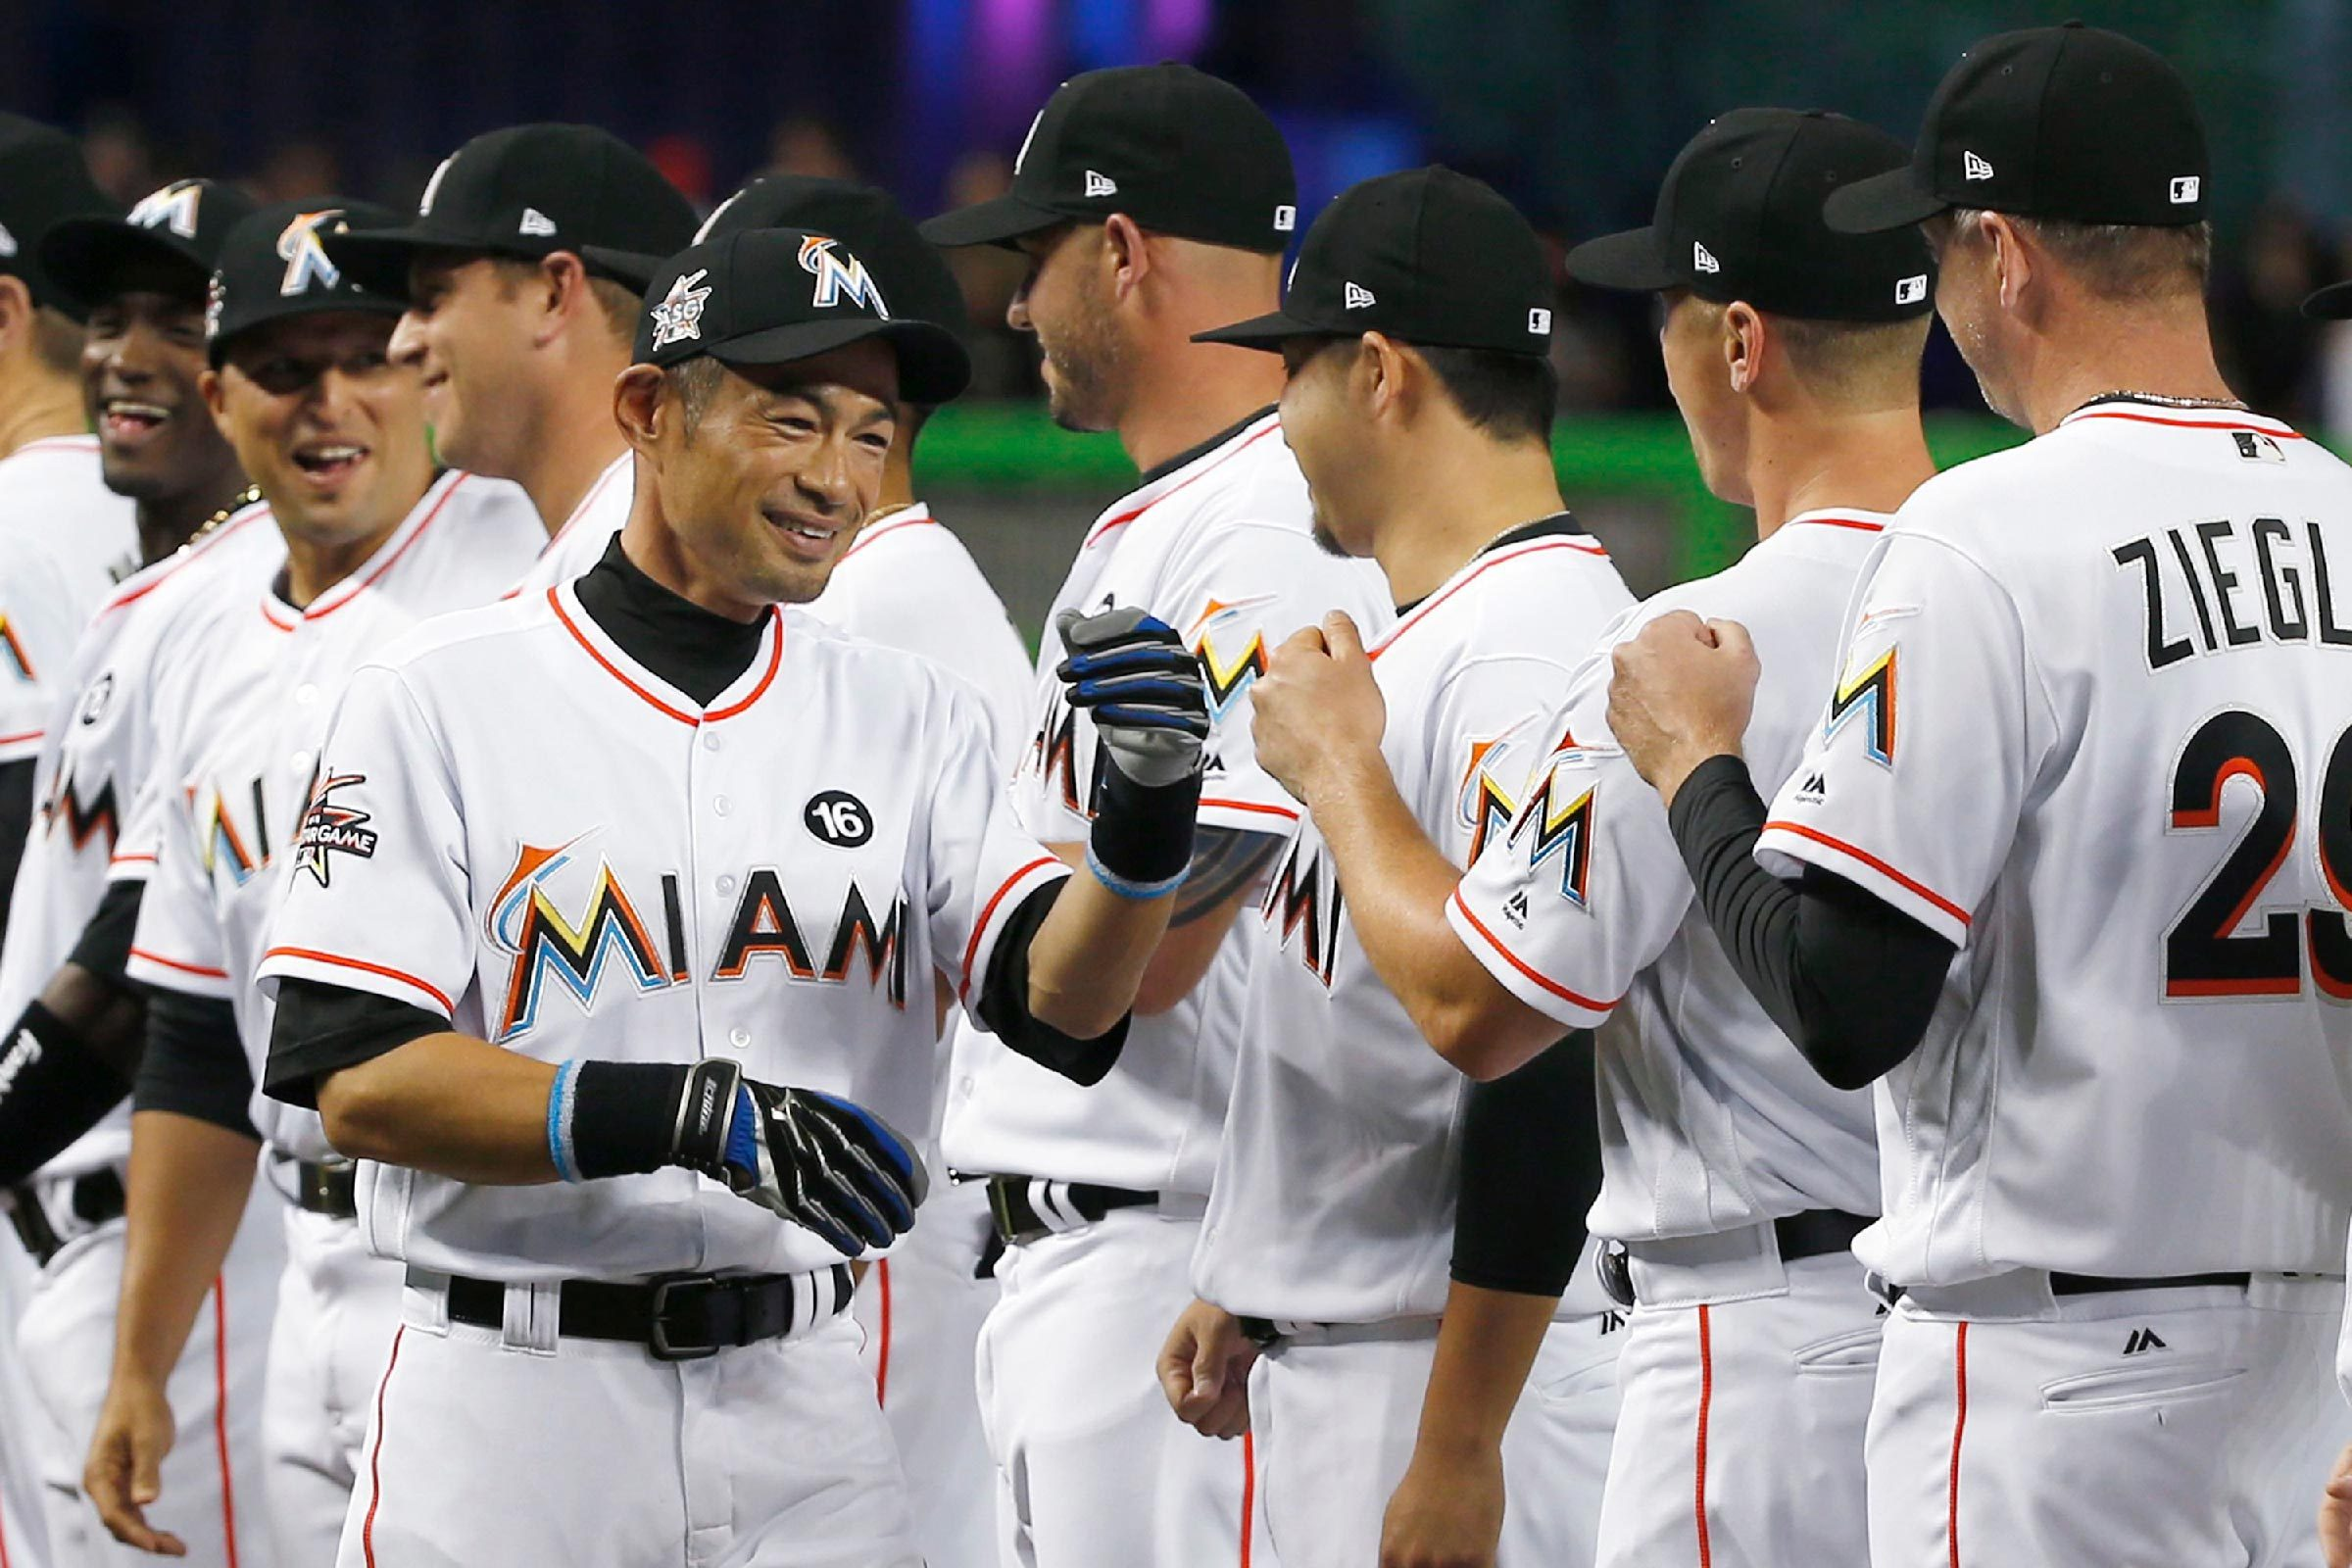 Miami Marlins' Ichiro Suzuki, of Japan, greets teammates during team player introductions before the start of a baseball game against the Atlanta Braves, in Miami